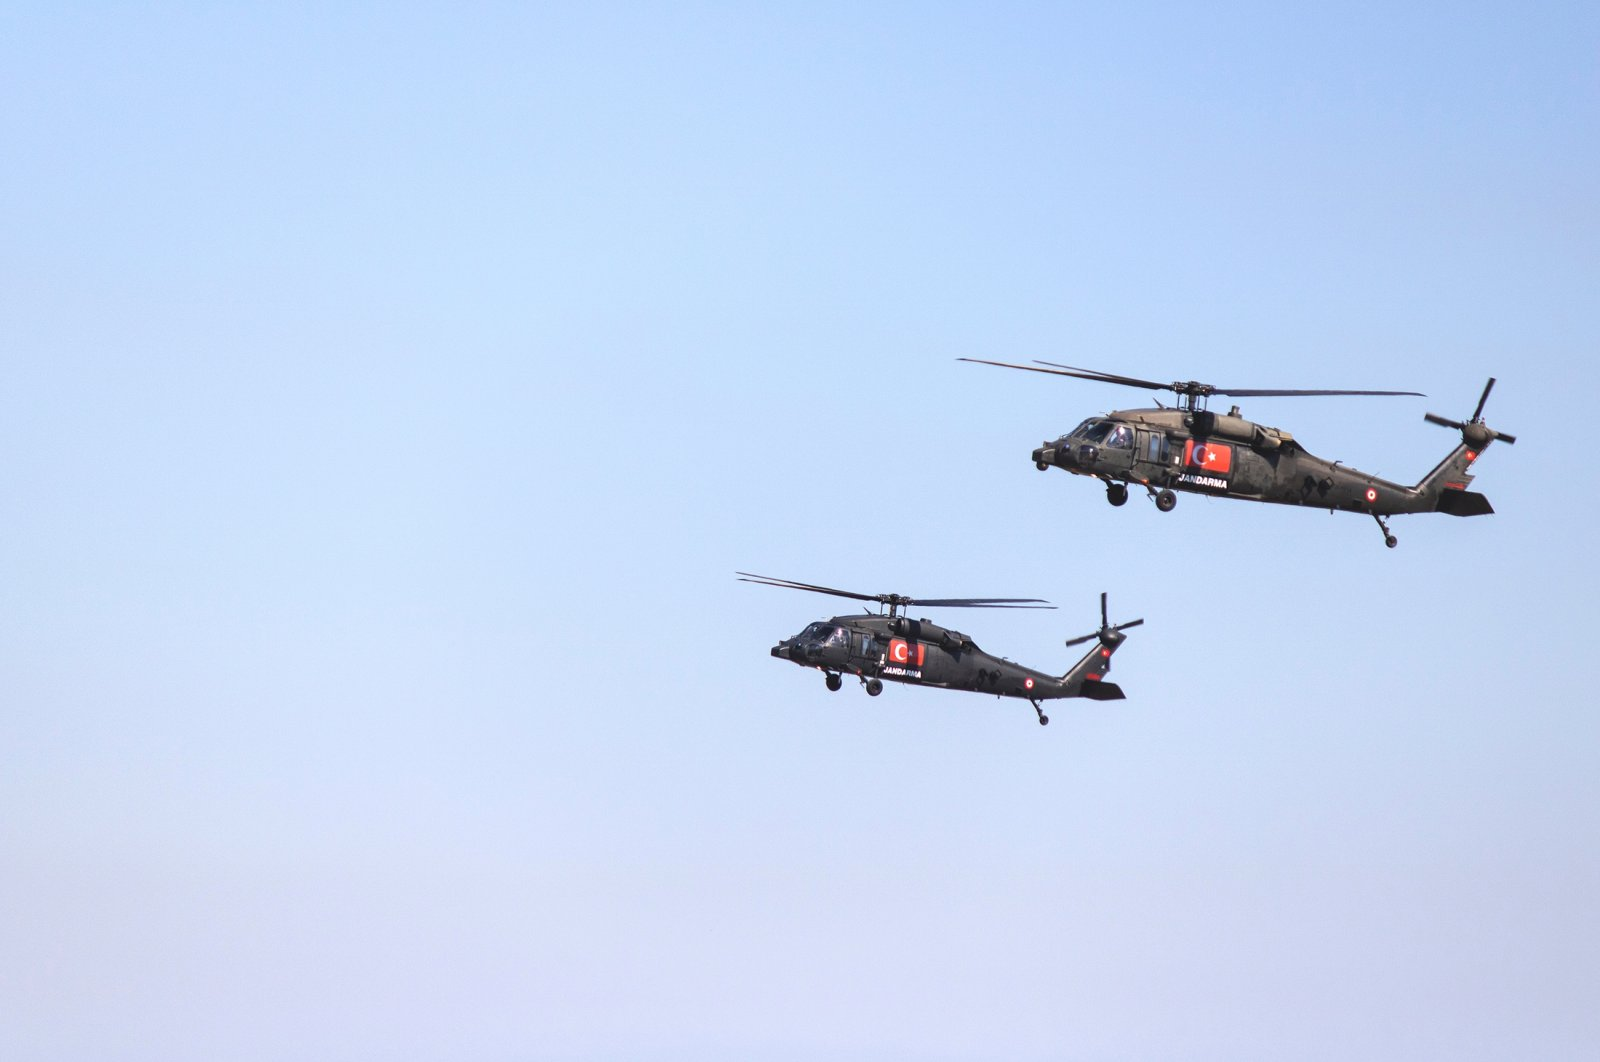 A Sikorsky S-70A-28 and a Blackhawk helicopter belonging to the Gendarmerie General Command are seen in the air during Teknofest, Istanbul, Turkey, on Sept. 18, 2019. (Shutterstock Photo)